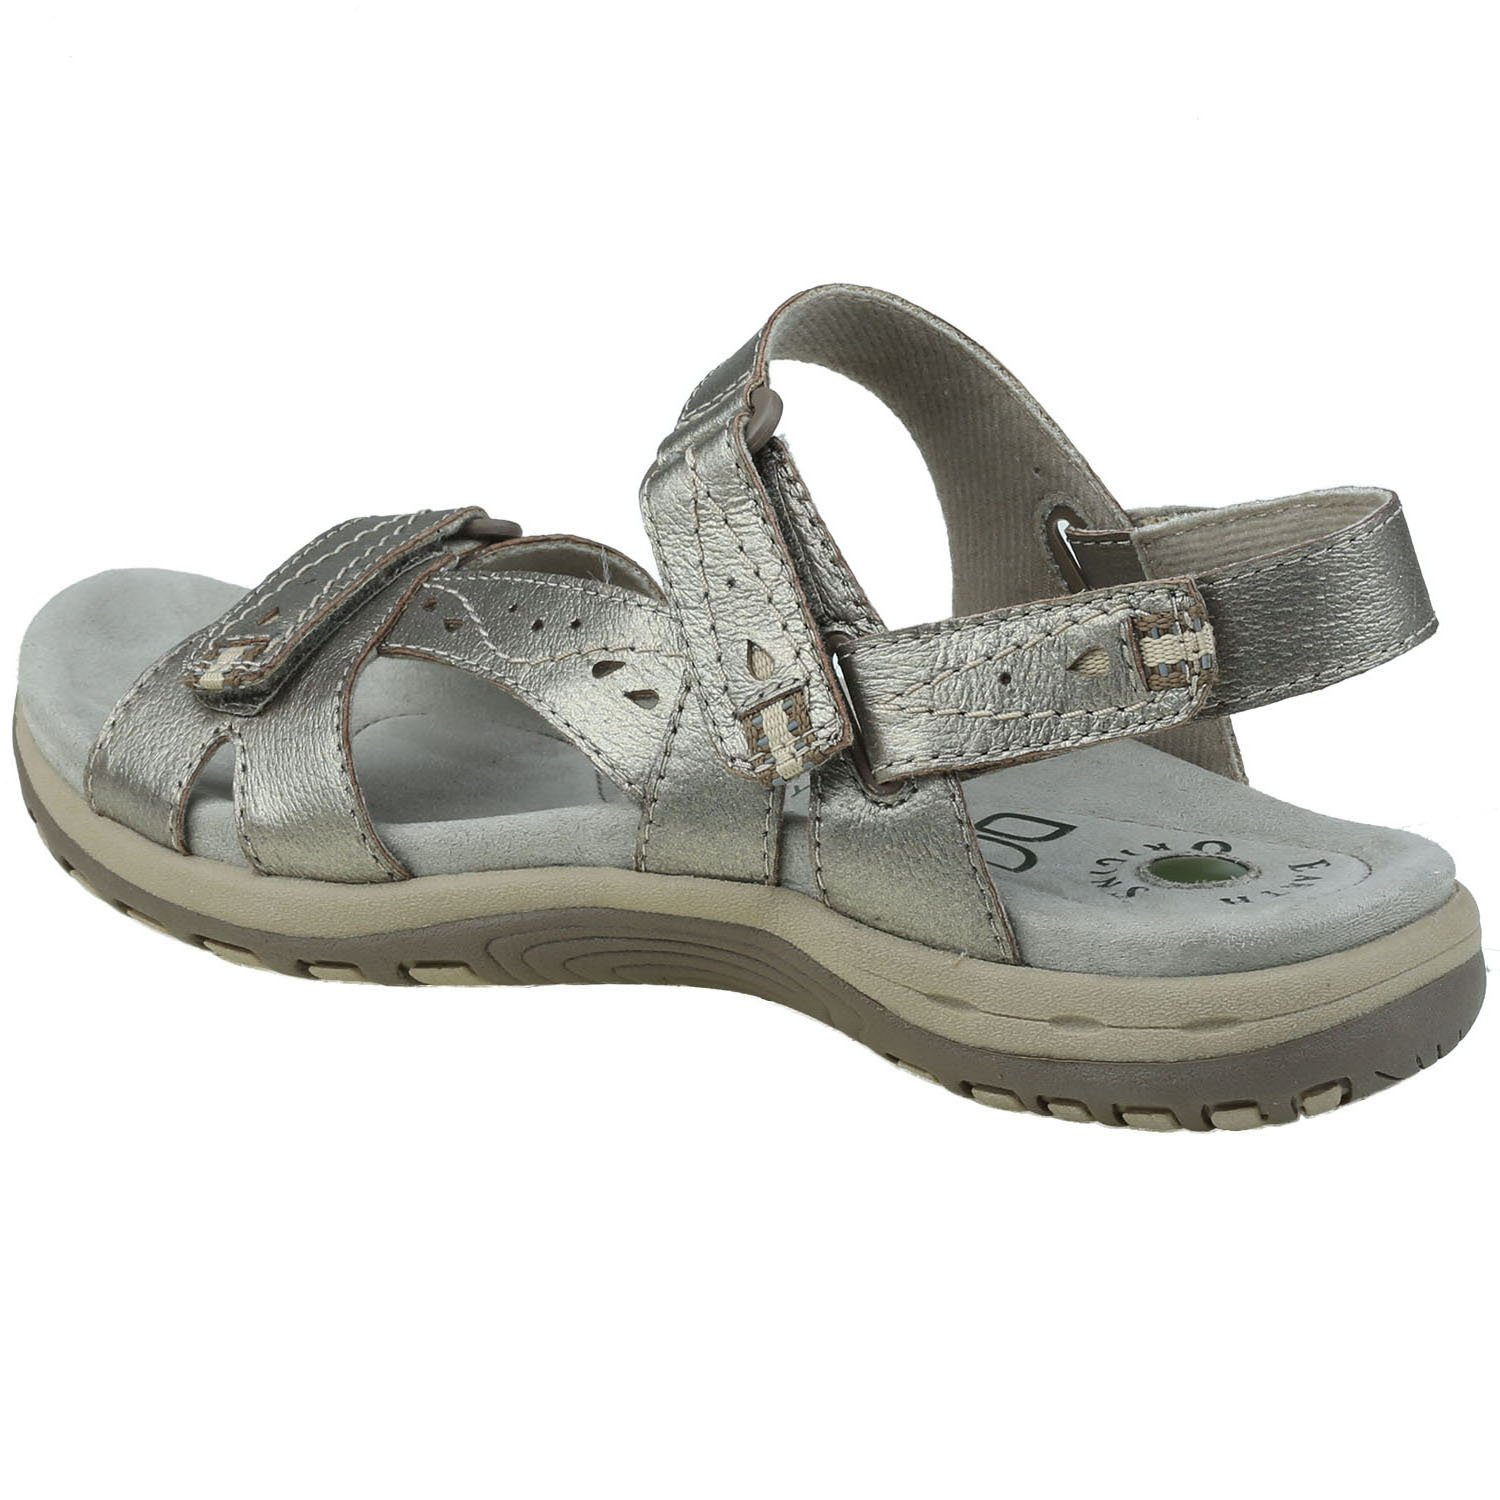 Earth Origins Women's Sophie Sandals B0795FLPPC 7 C/D US|Platinum